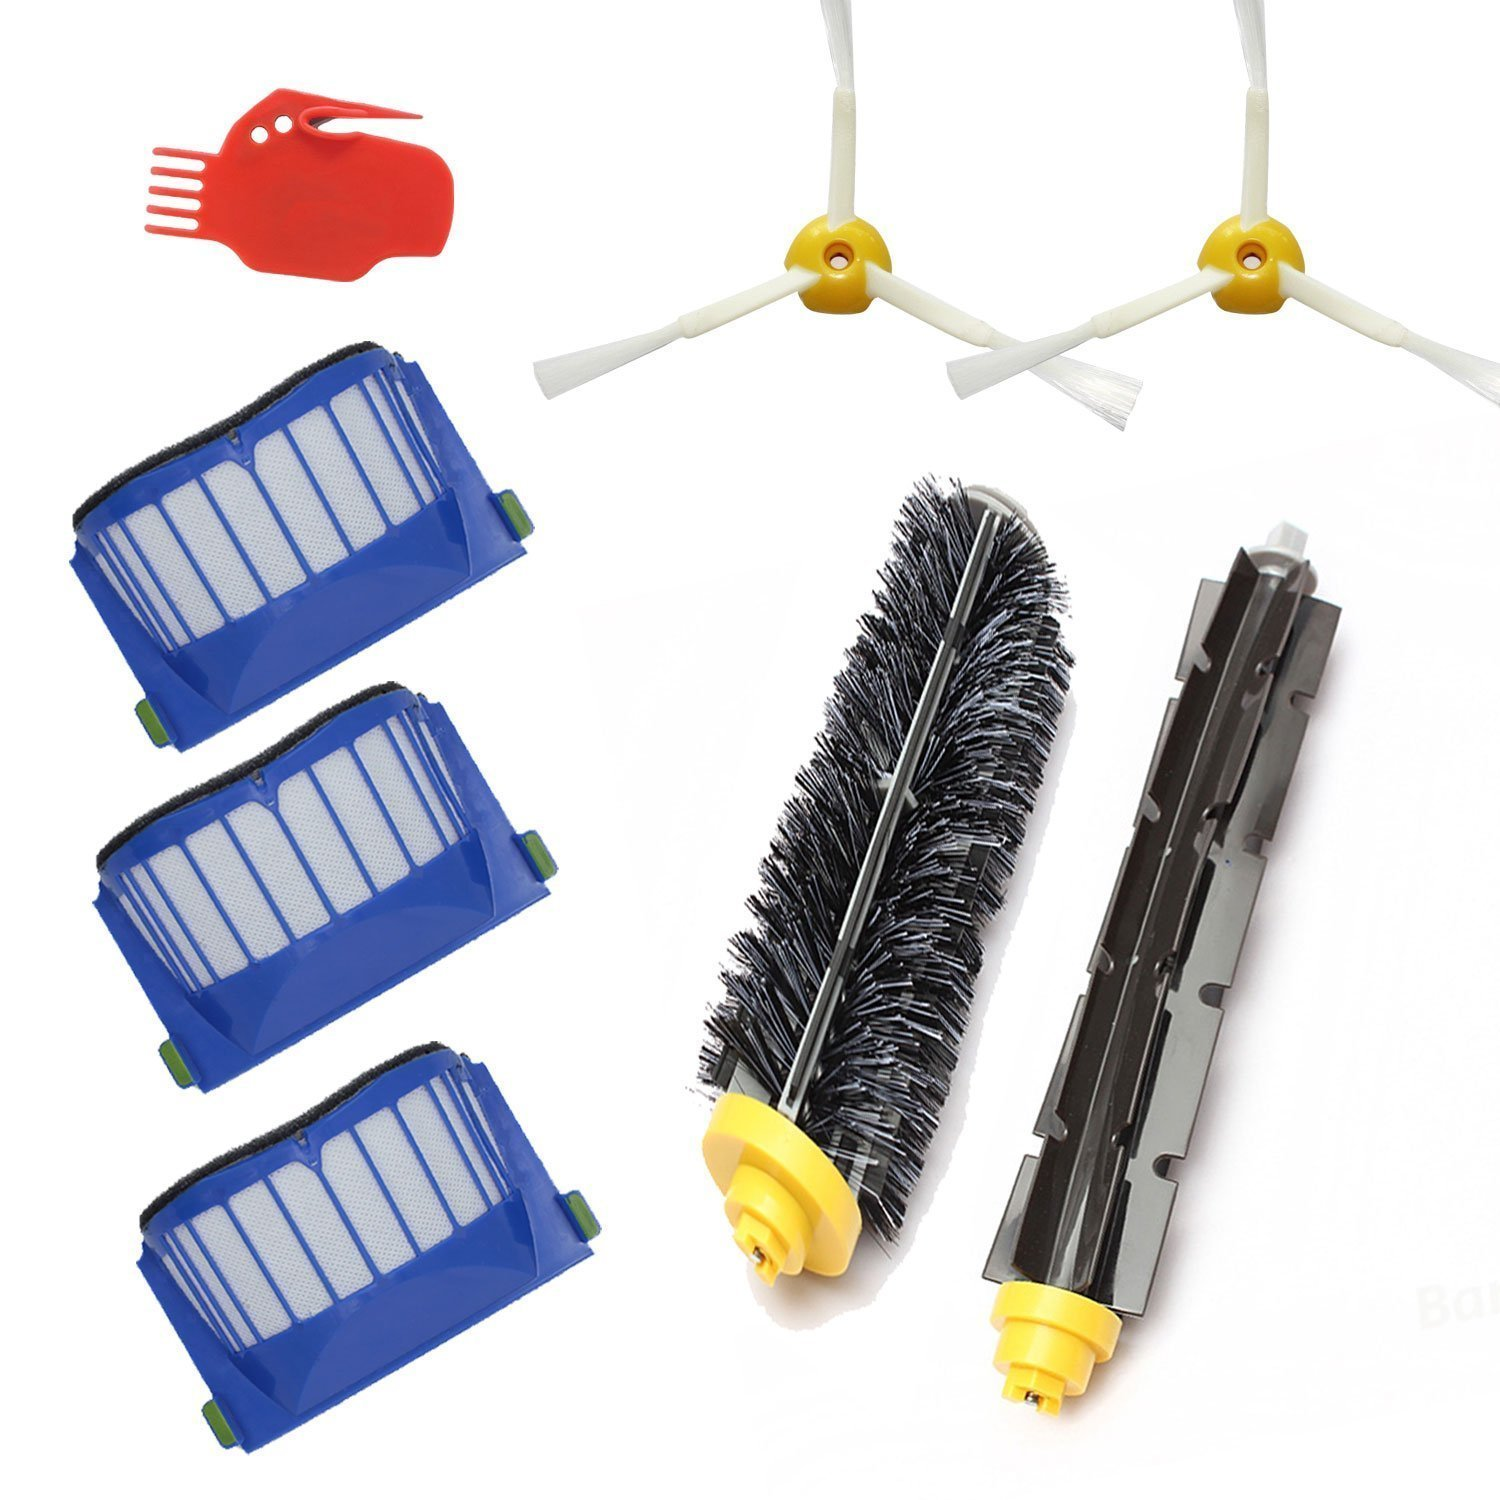 LOVE(TM)kit for Robot 600 Series Replenishment for 585 595 600 620 650--Includes 3 Pcs Filter, 2pcs Side Brush, and 1 Pc Bristle Brush and Flexible Beater Brush, Cleaning Tool